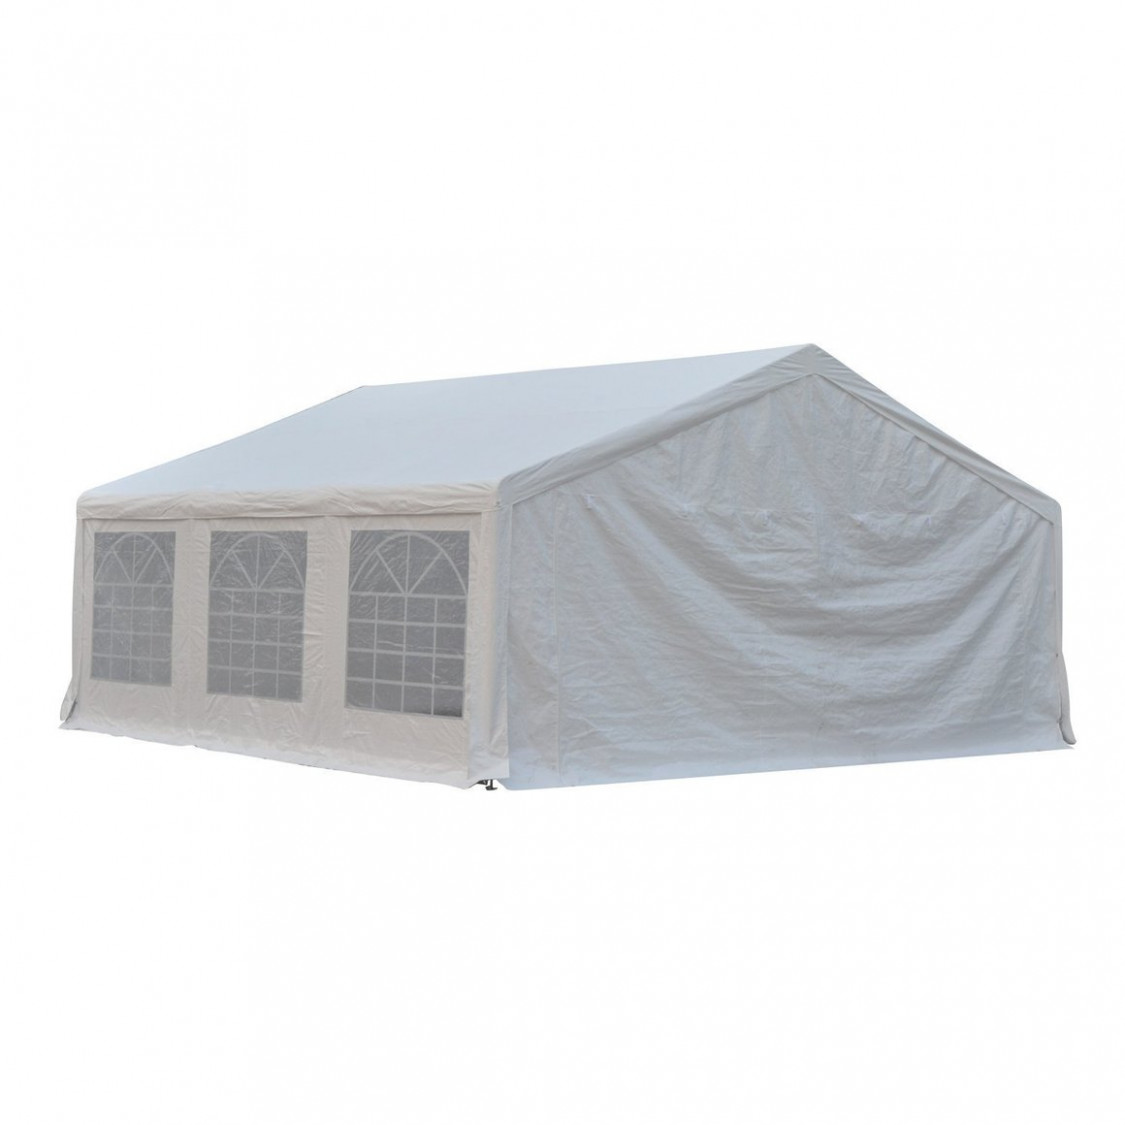 Outsunny HEAVY DUTY 13x13FT Large Carport Canopy Wedding Event Party ...